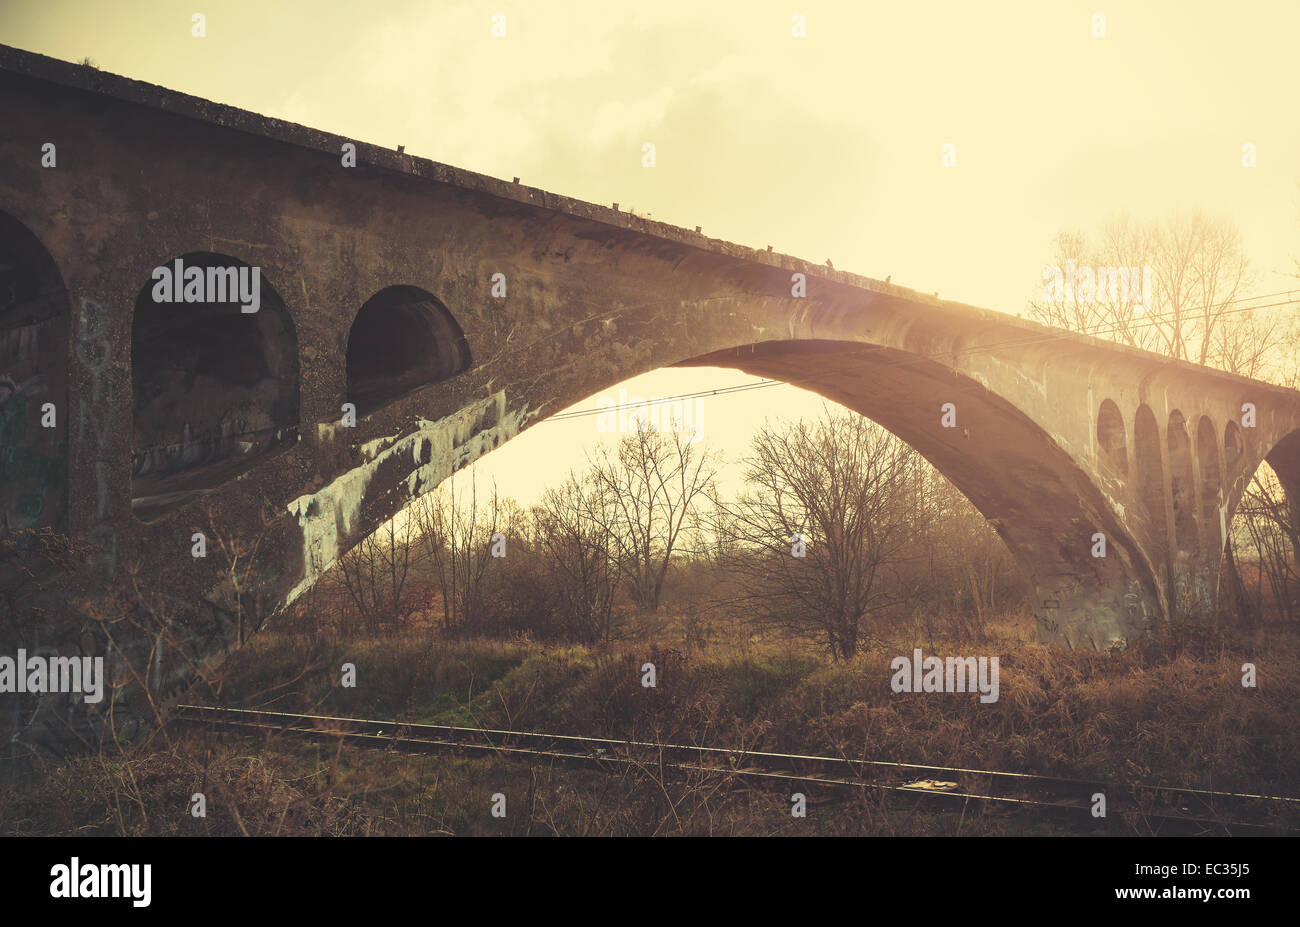 Retro vintage filtered picture of an arch bridge. - Stock Image